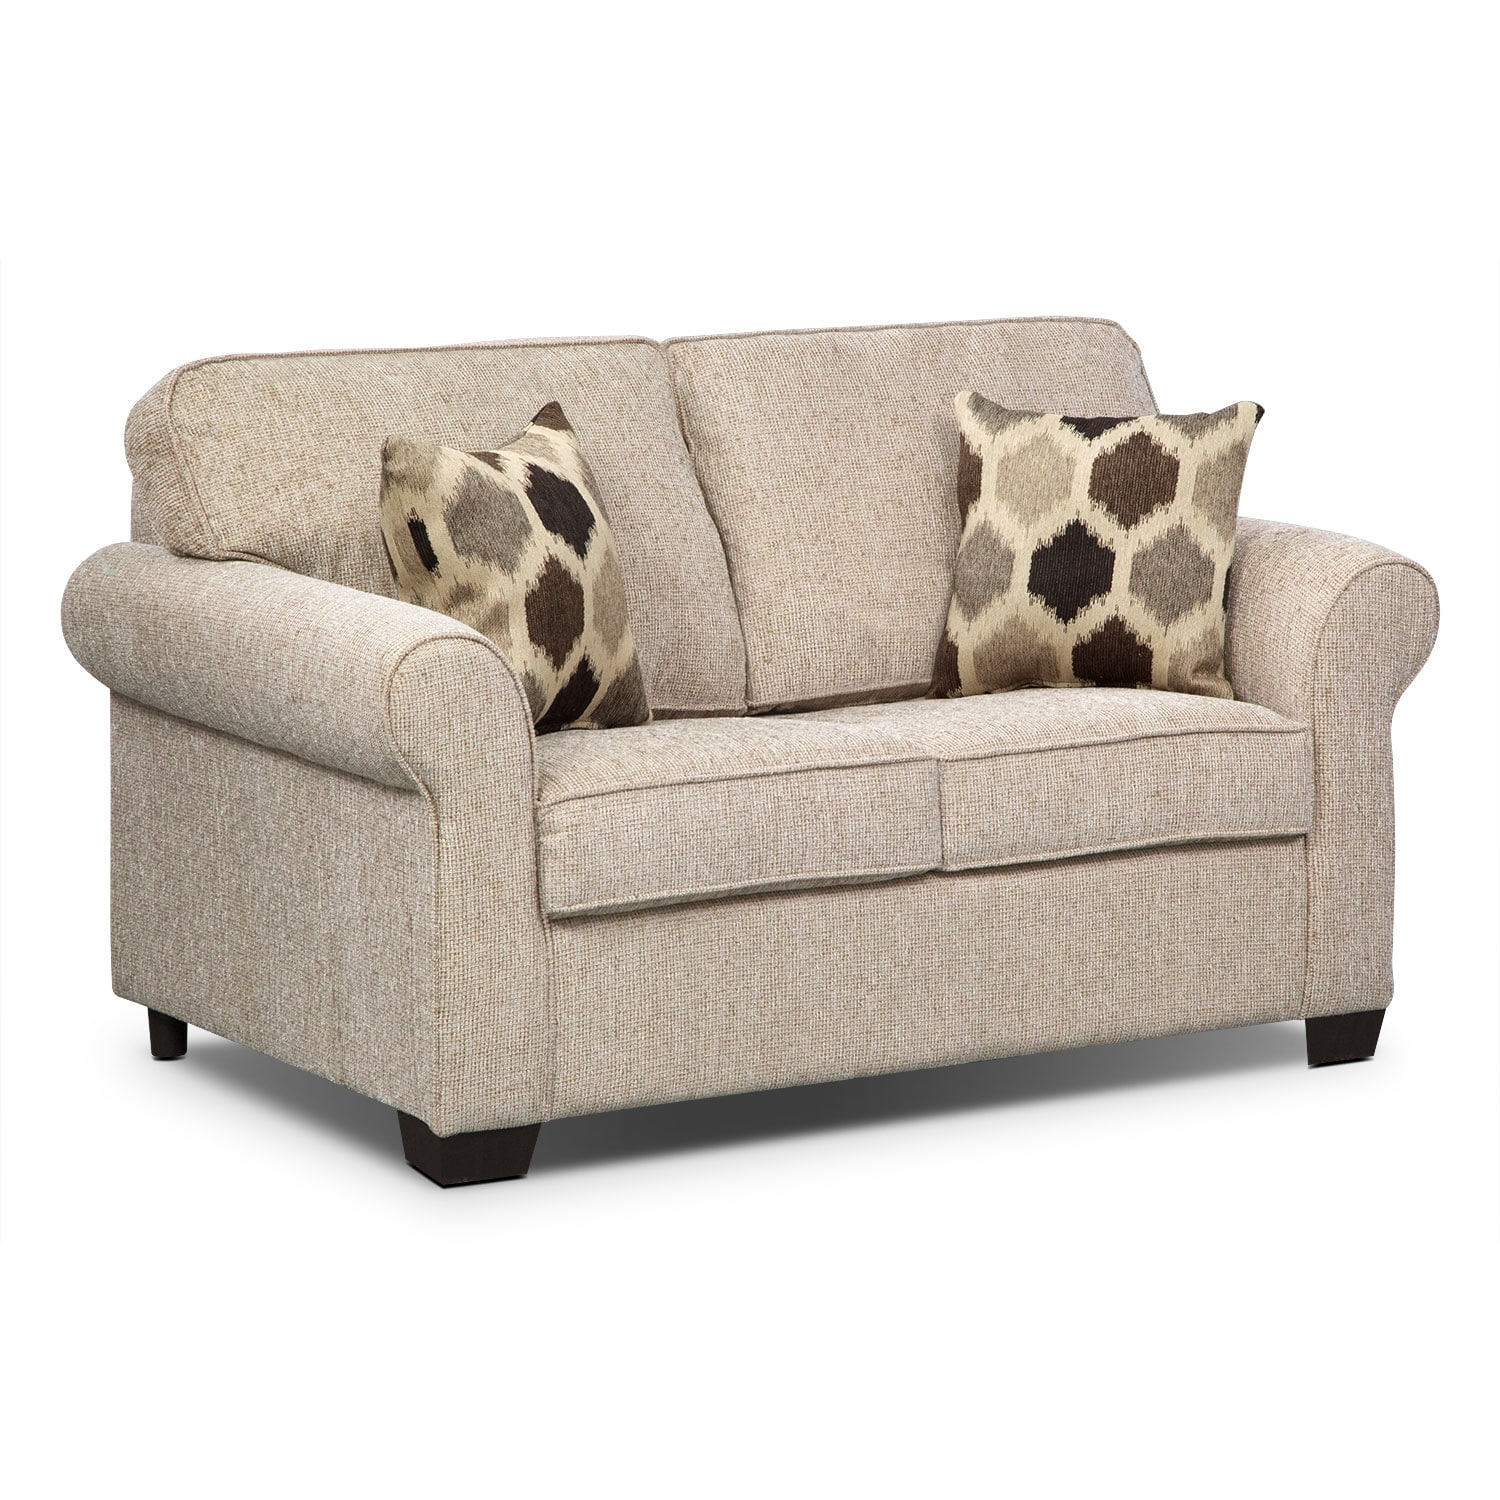 Fletcher Twin Innerspring Sleeper Sofa Beige American Signature Furniture